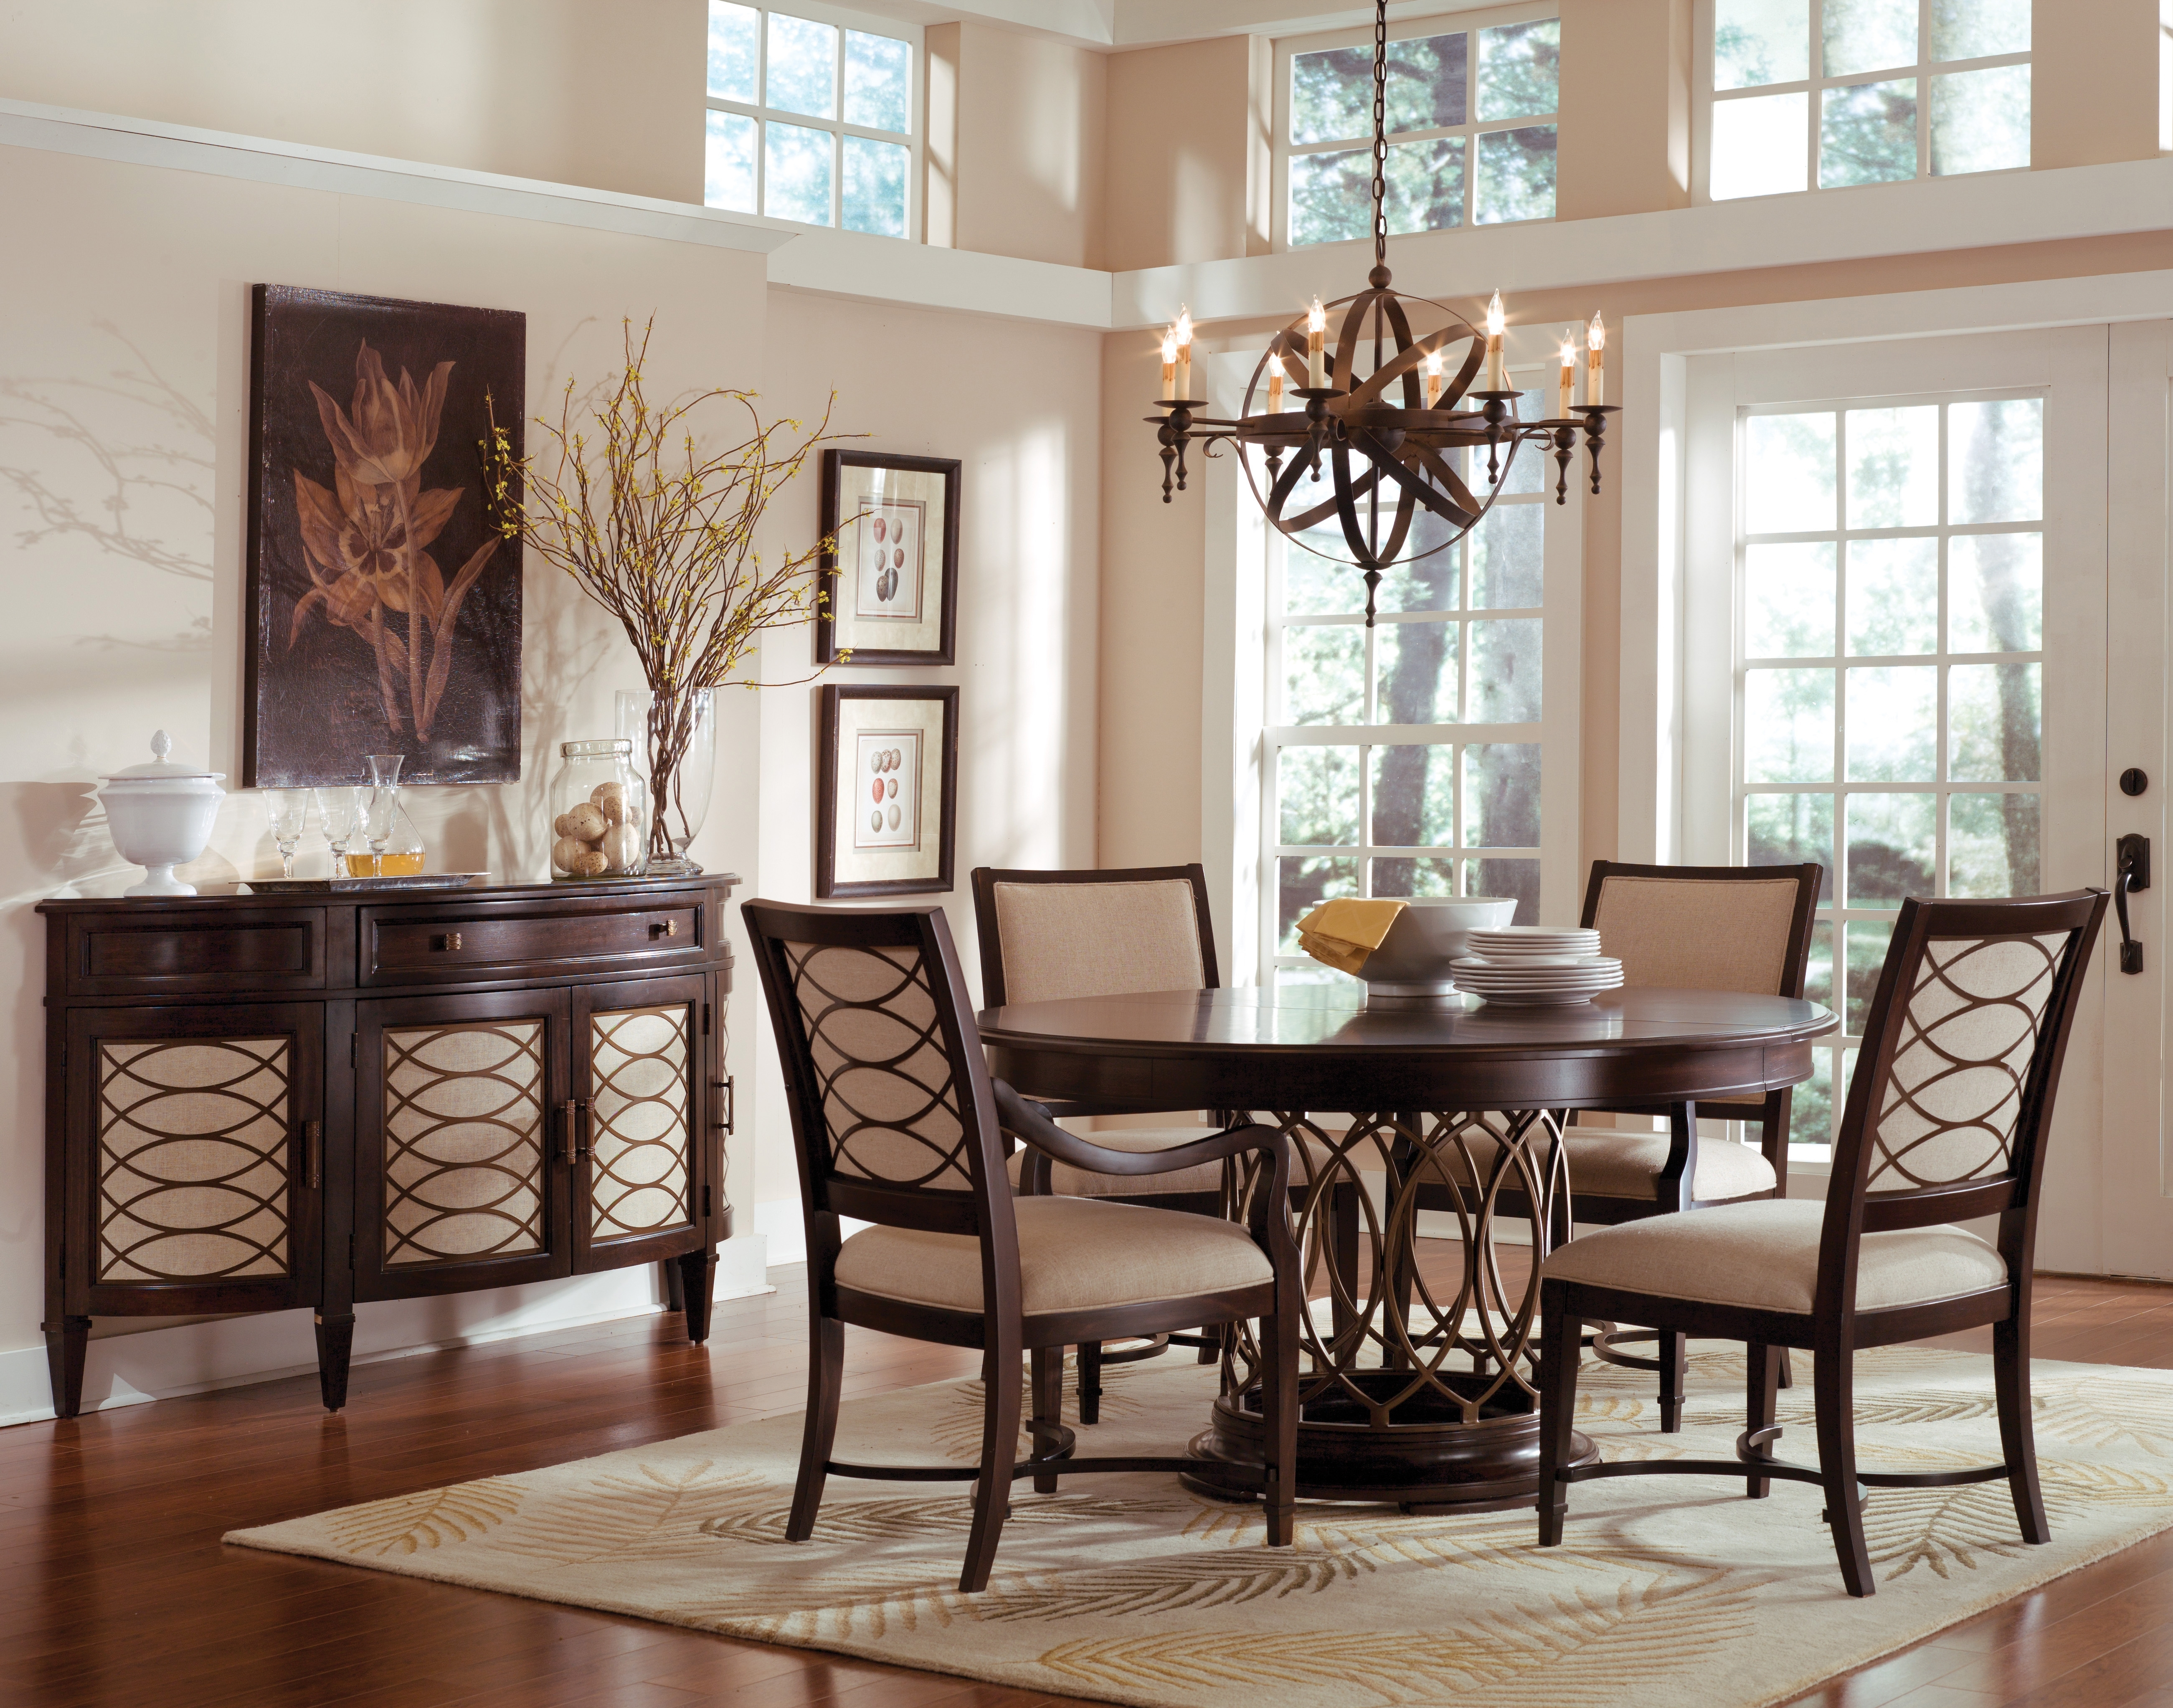 Brilliant Ideas Of Round Dining Room Table With Grady Round Dining With Regard To Most Up To Date Grady Round Dining Tables (View 18 of 20)